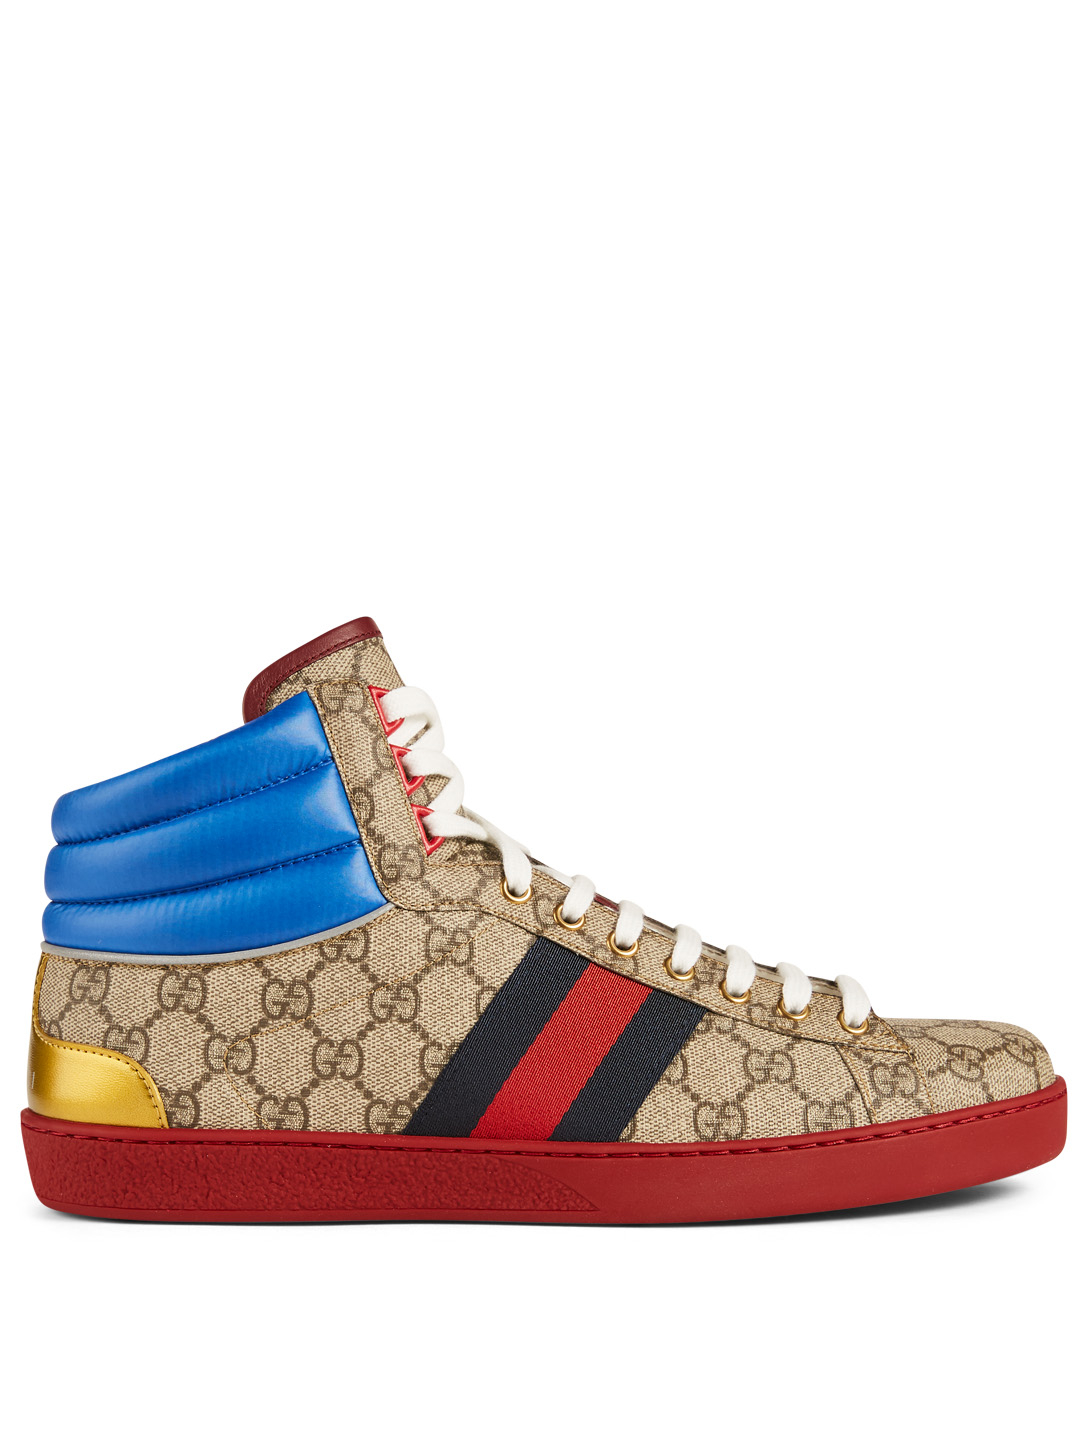 29843d6b8f7 GUCCI Ace GG Supreme High-Top Sneakers